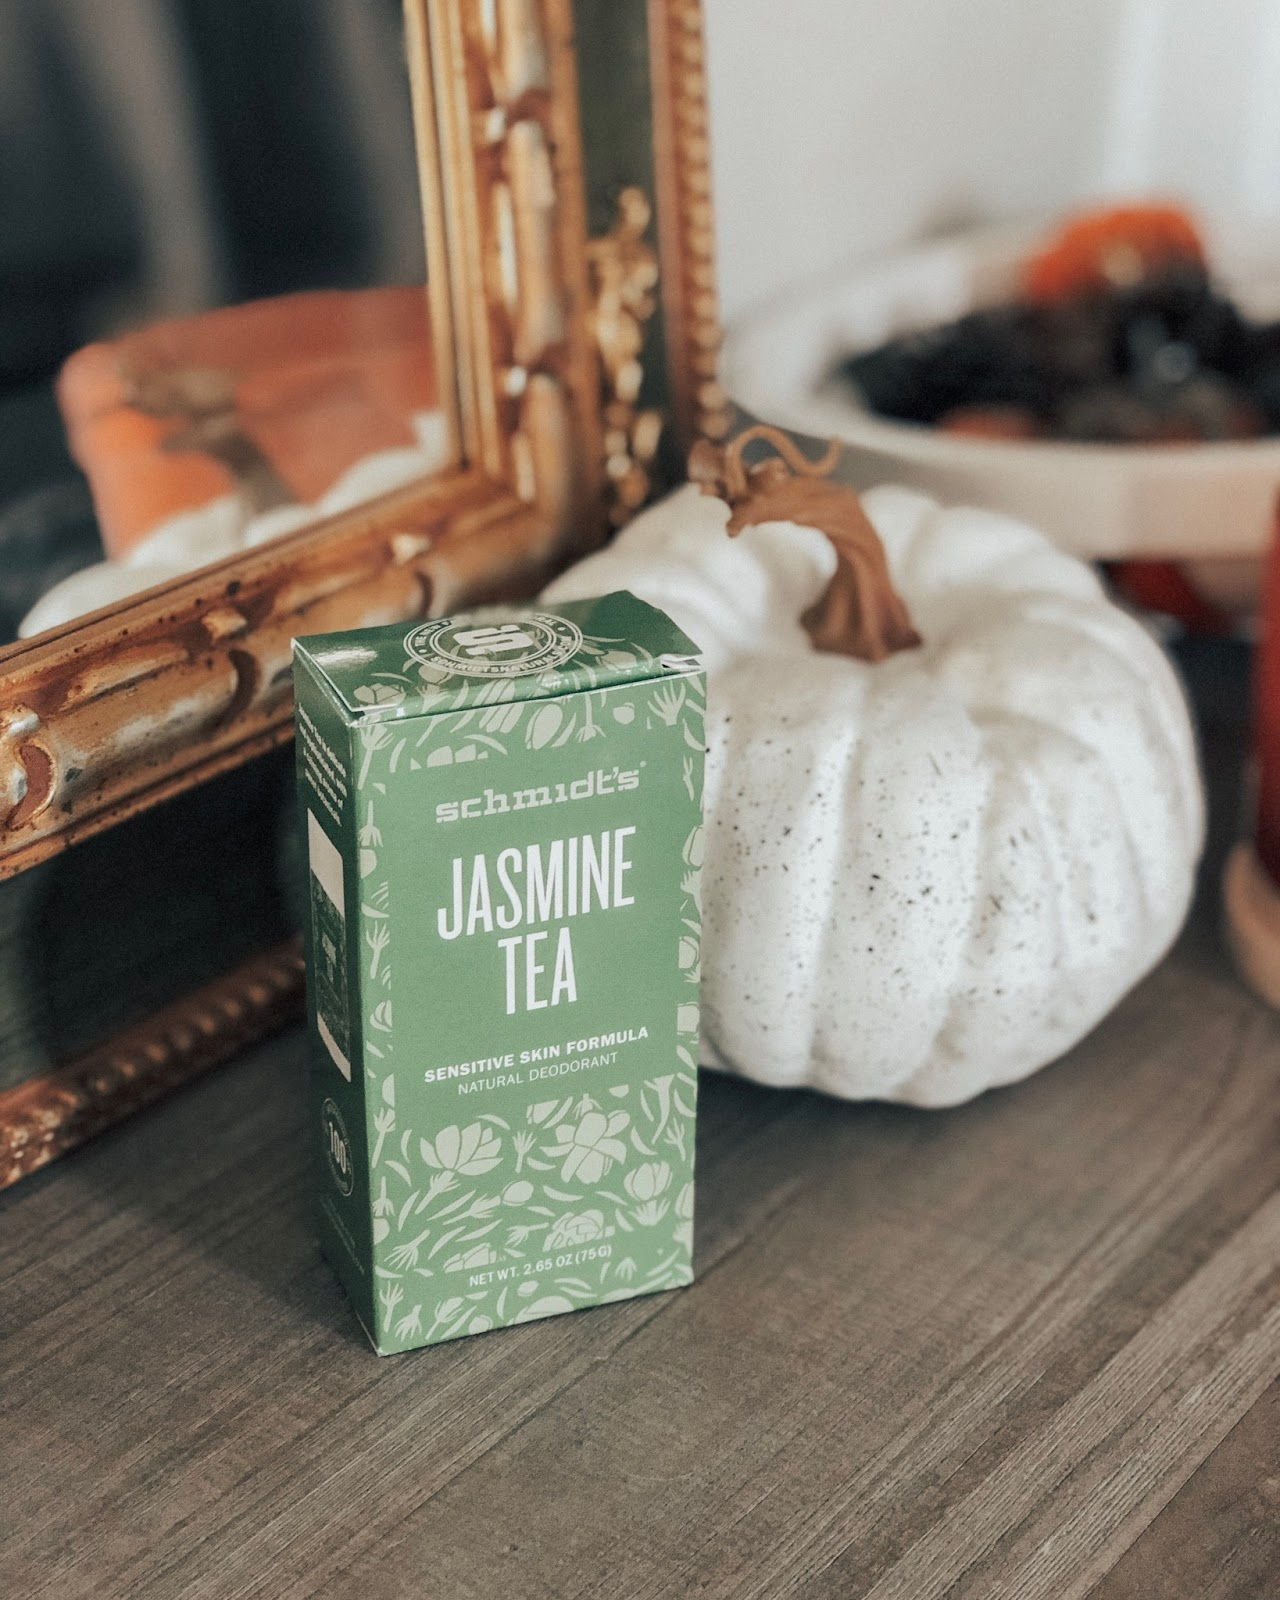 The 5 Clean Beauty Products & Brands You Need to Use - Schmidt's Jasmine Tea Sensitive Skin Deodorant - Affordable by Amanda Beauty Blogger in Tampa Bay, Florida